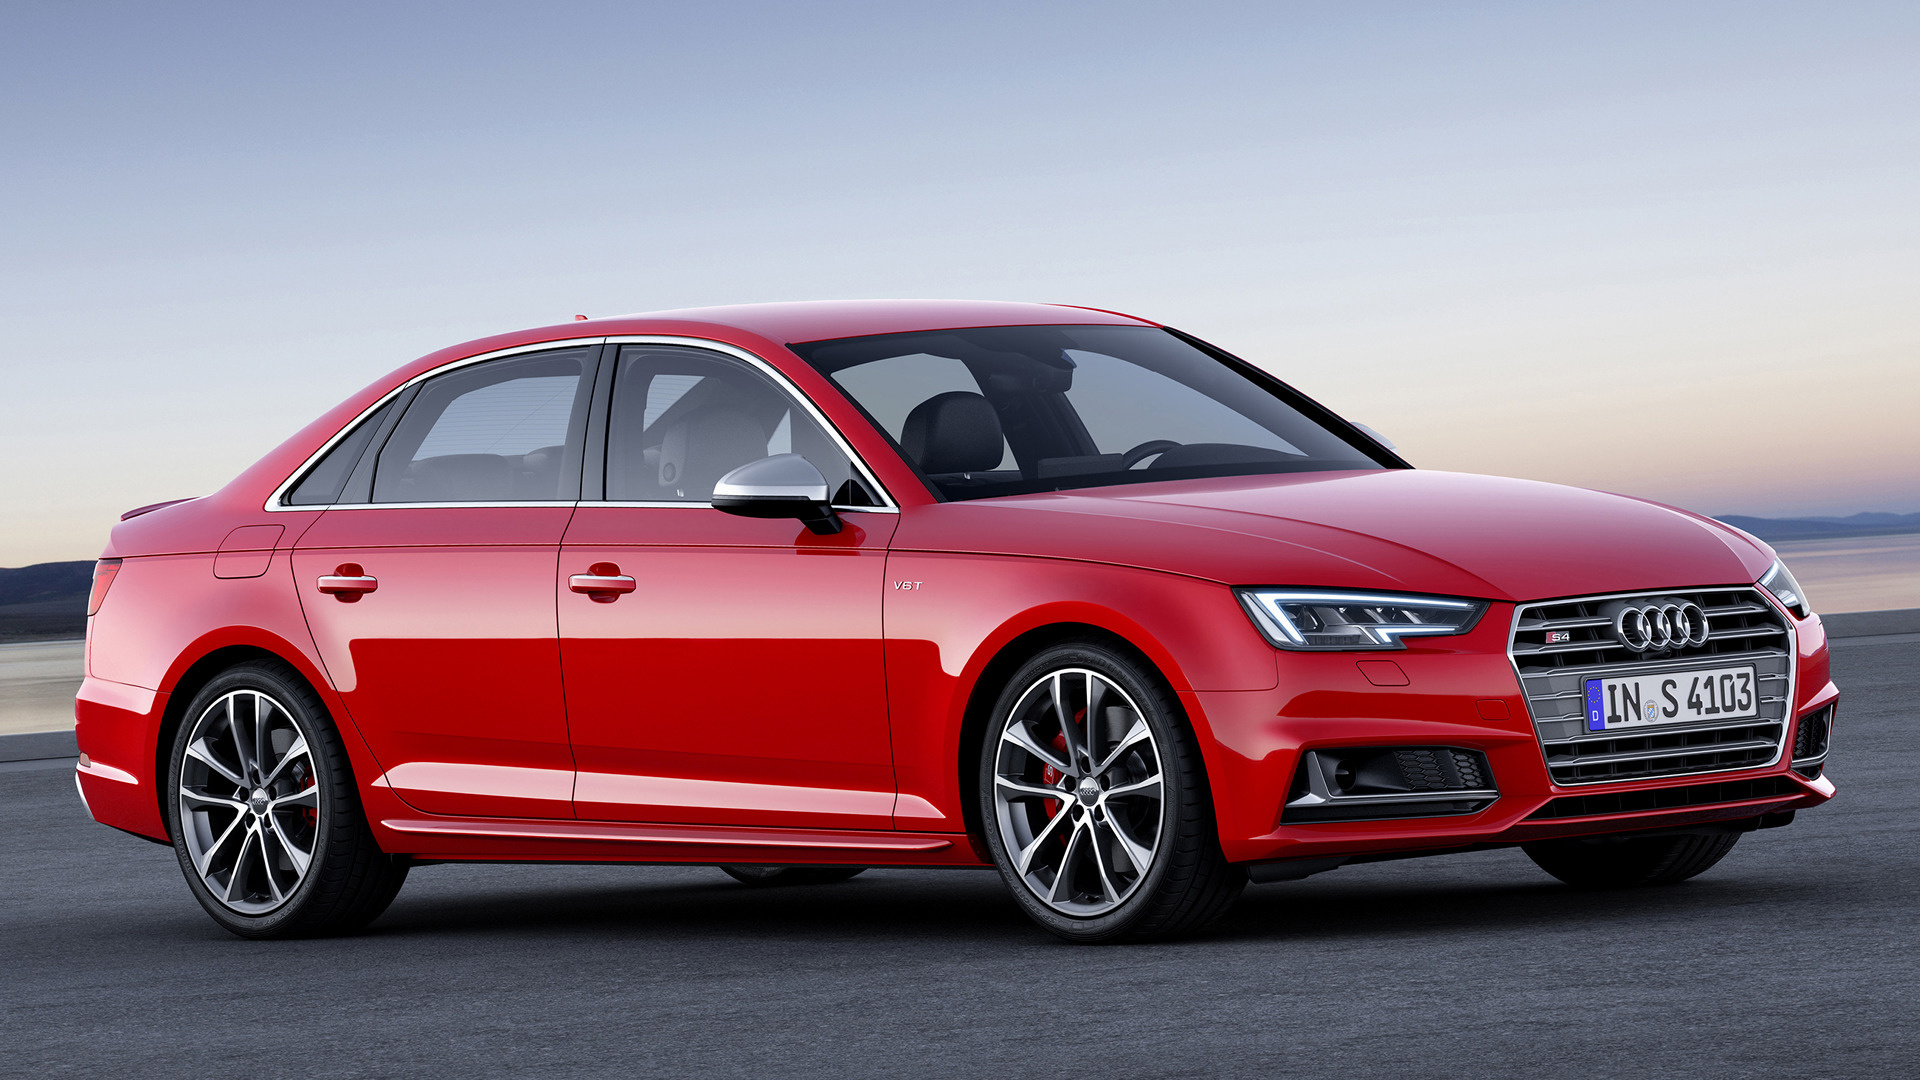 Audi S4 Sedan 2016 Wallpapers and HD Images 1920x1080